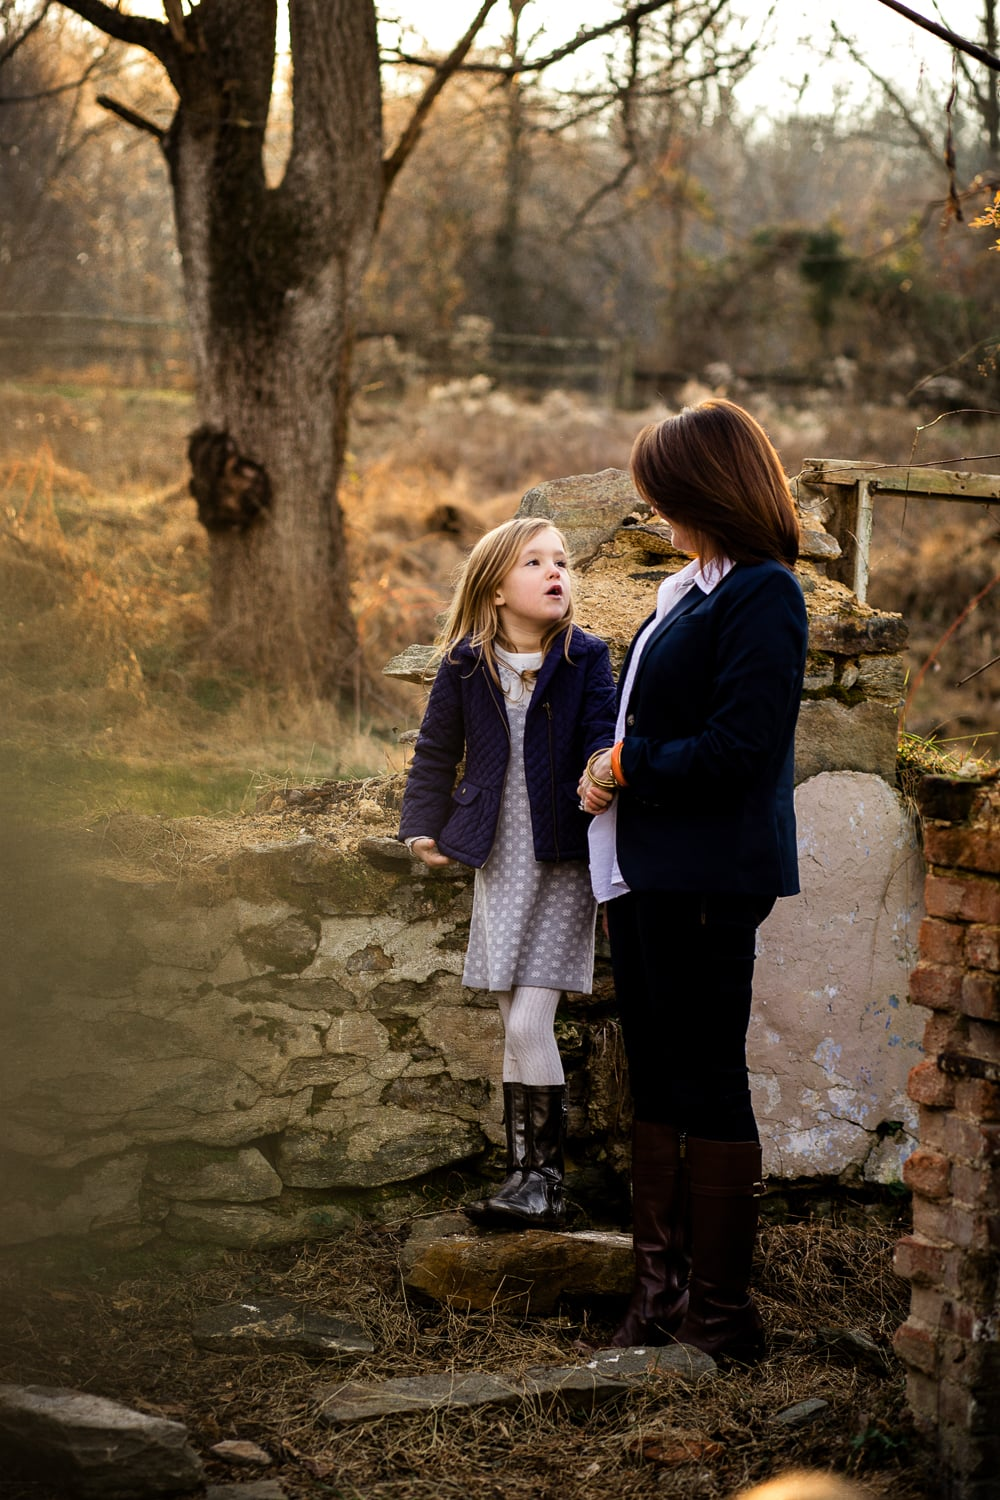 Sweet mother and daughter moment with them talking together in outdoor location.